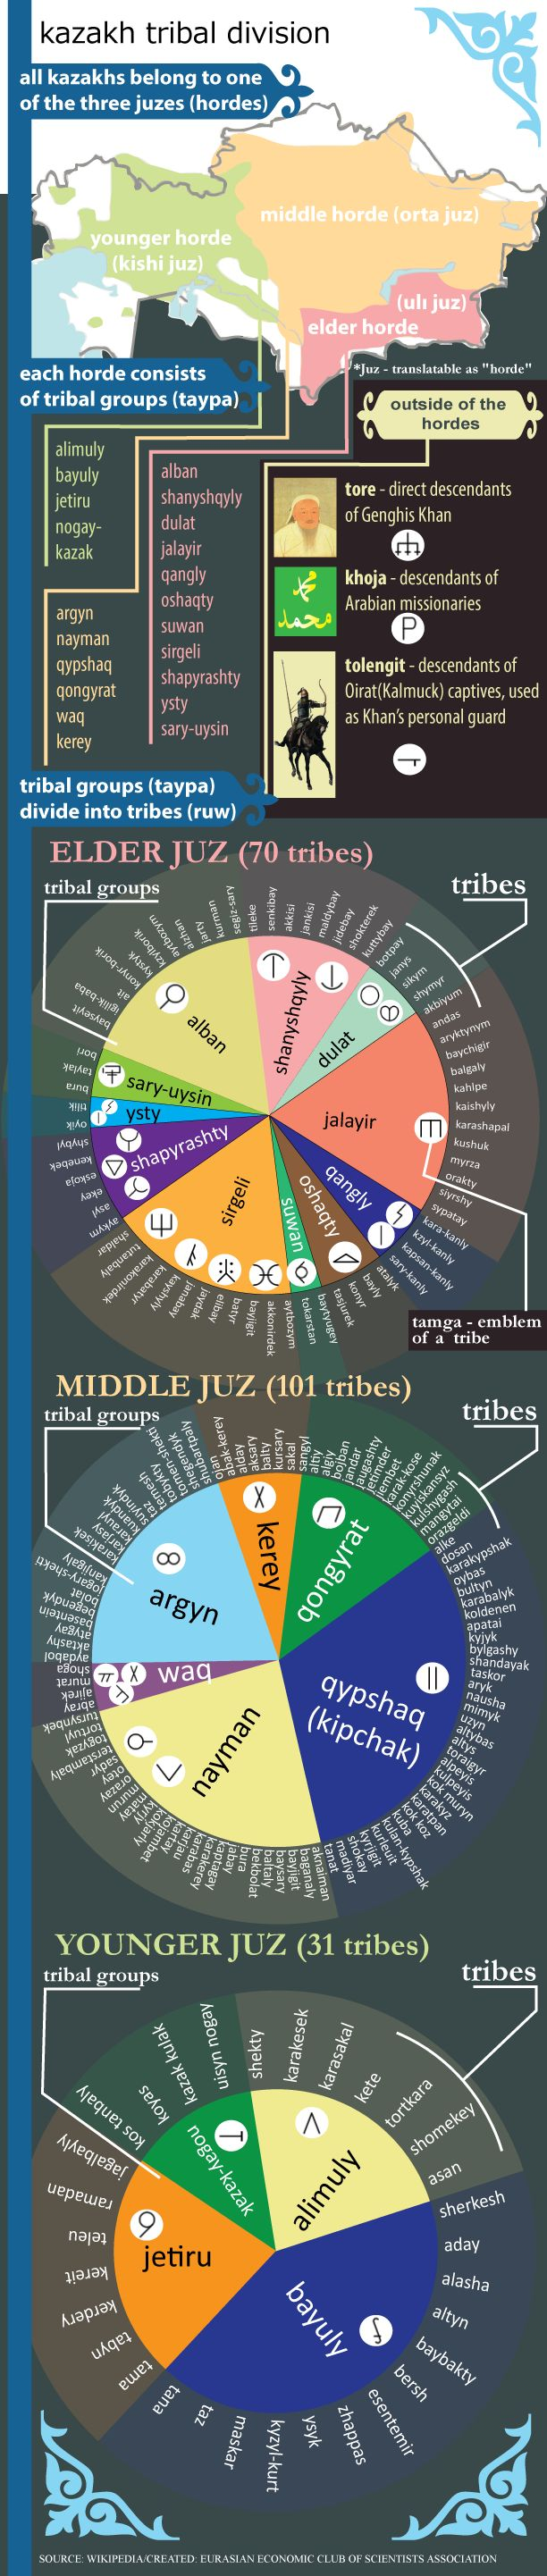 Kazakh-tribal-division  This is visual guide to those who interested in Kazakh tribal structure